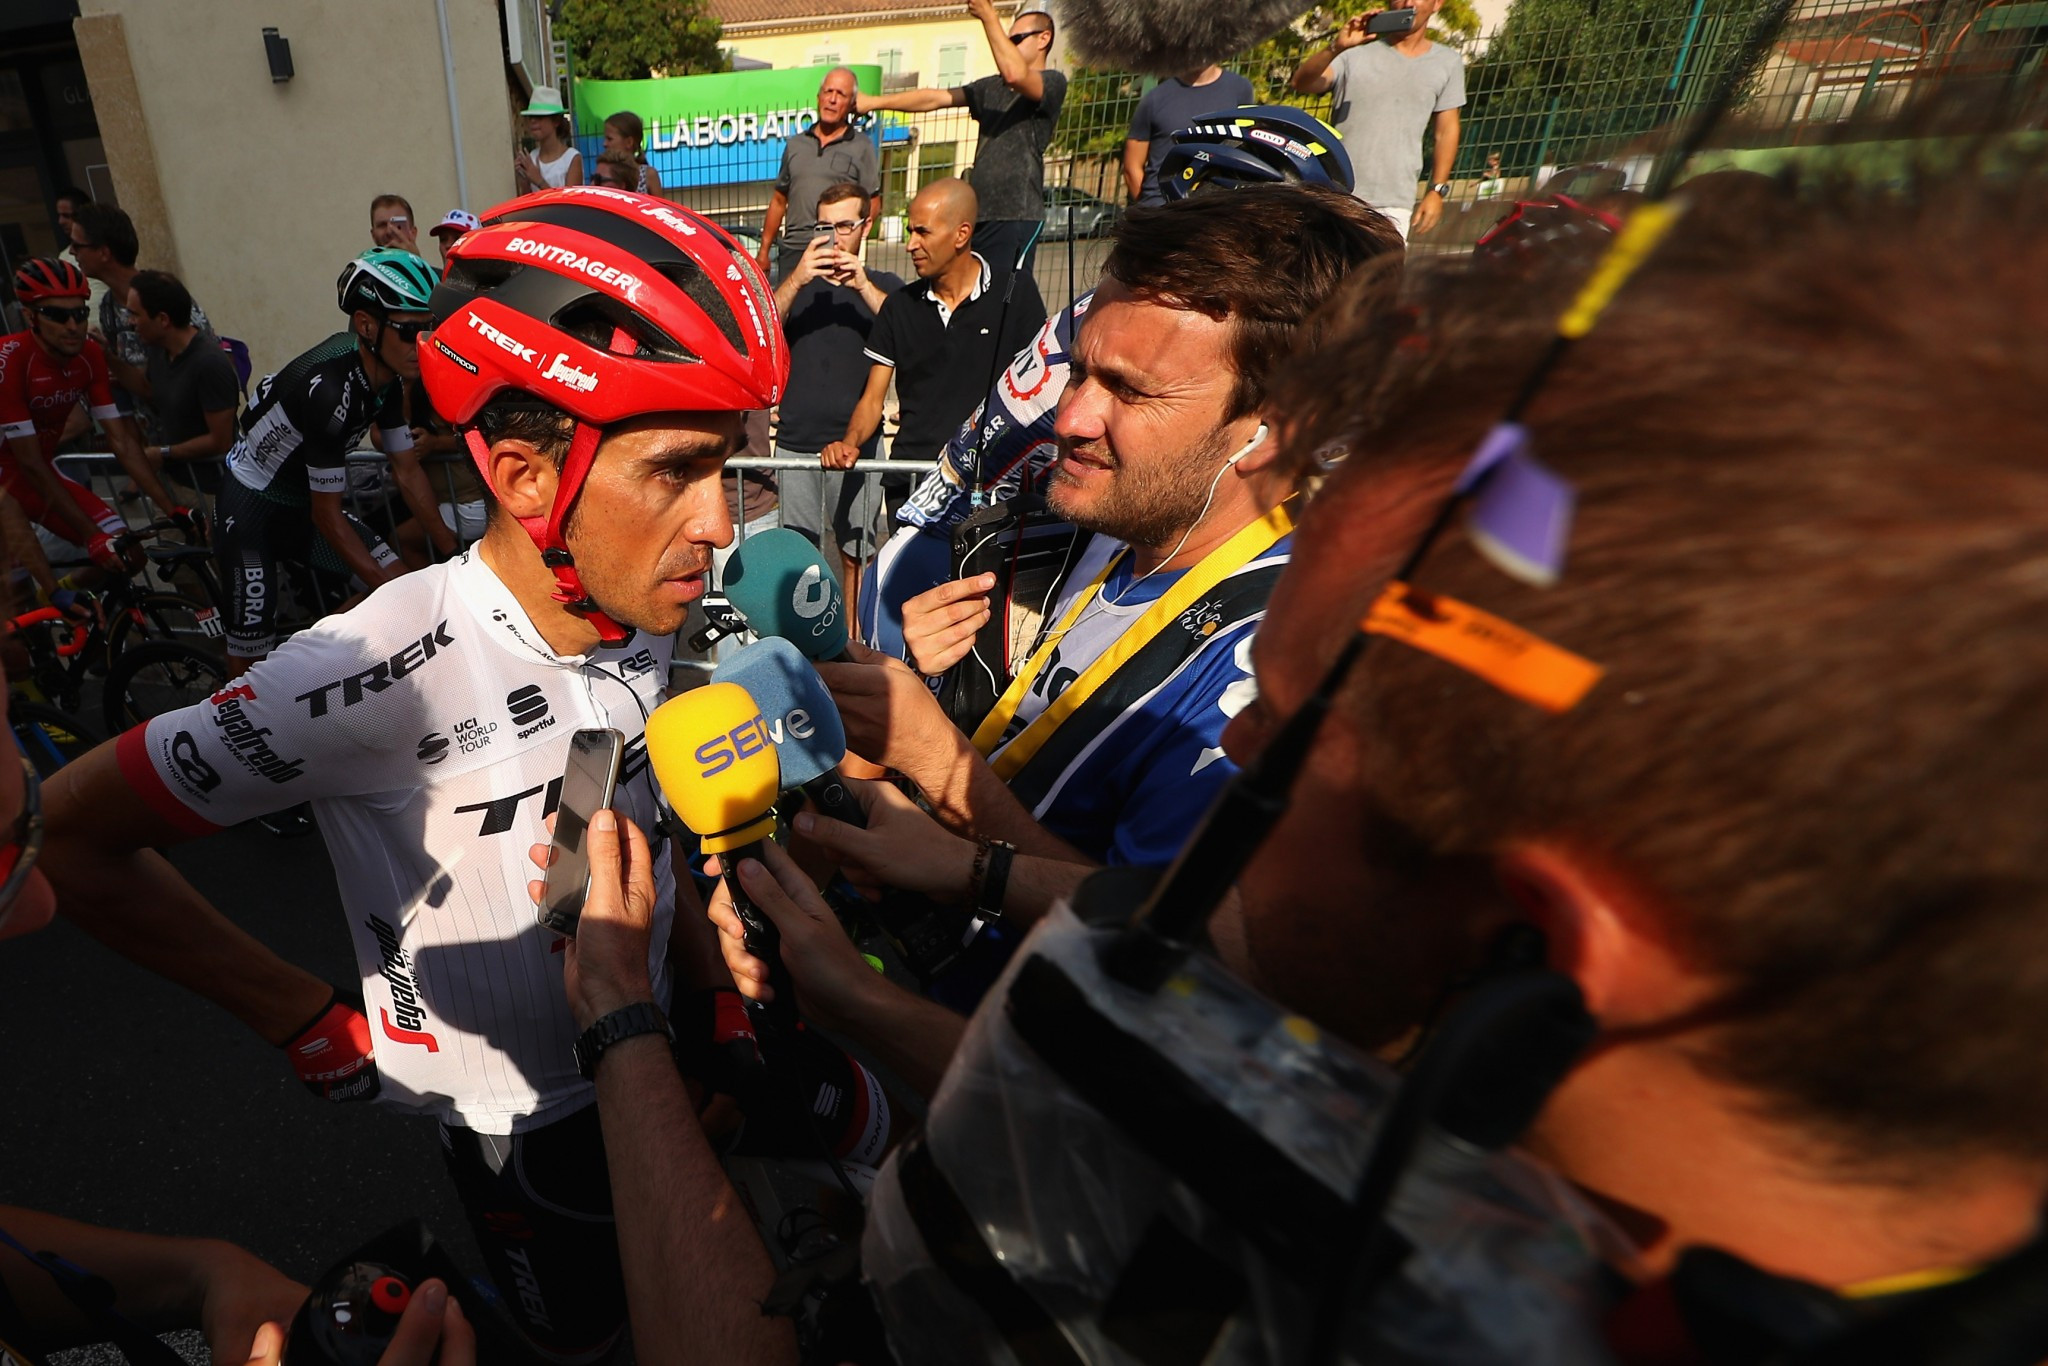 Alberto Contador will compete in the race for the final time in his career ©Getty Images